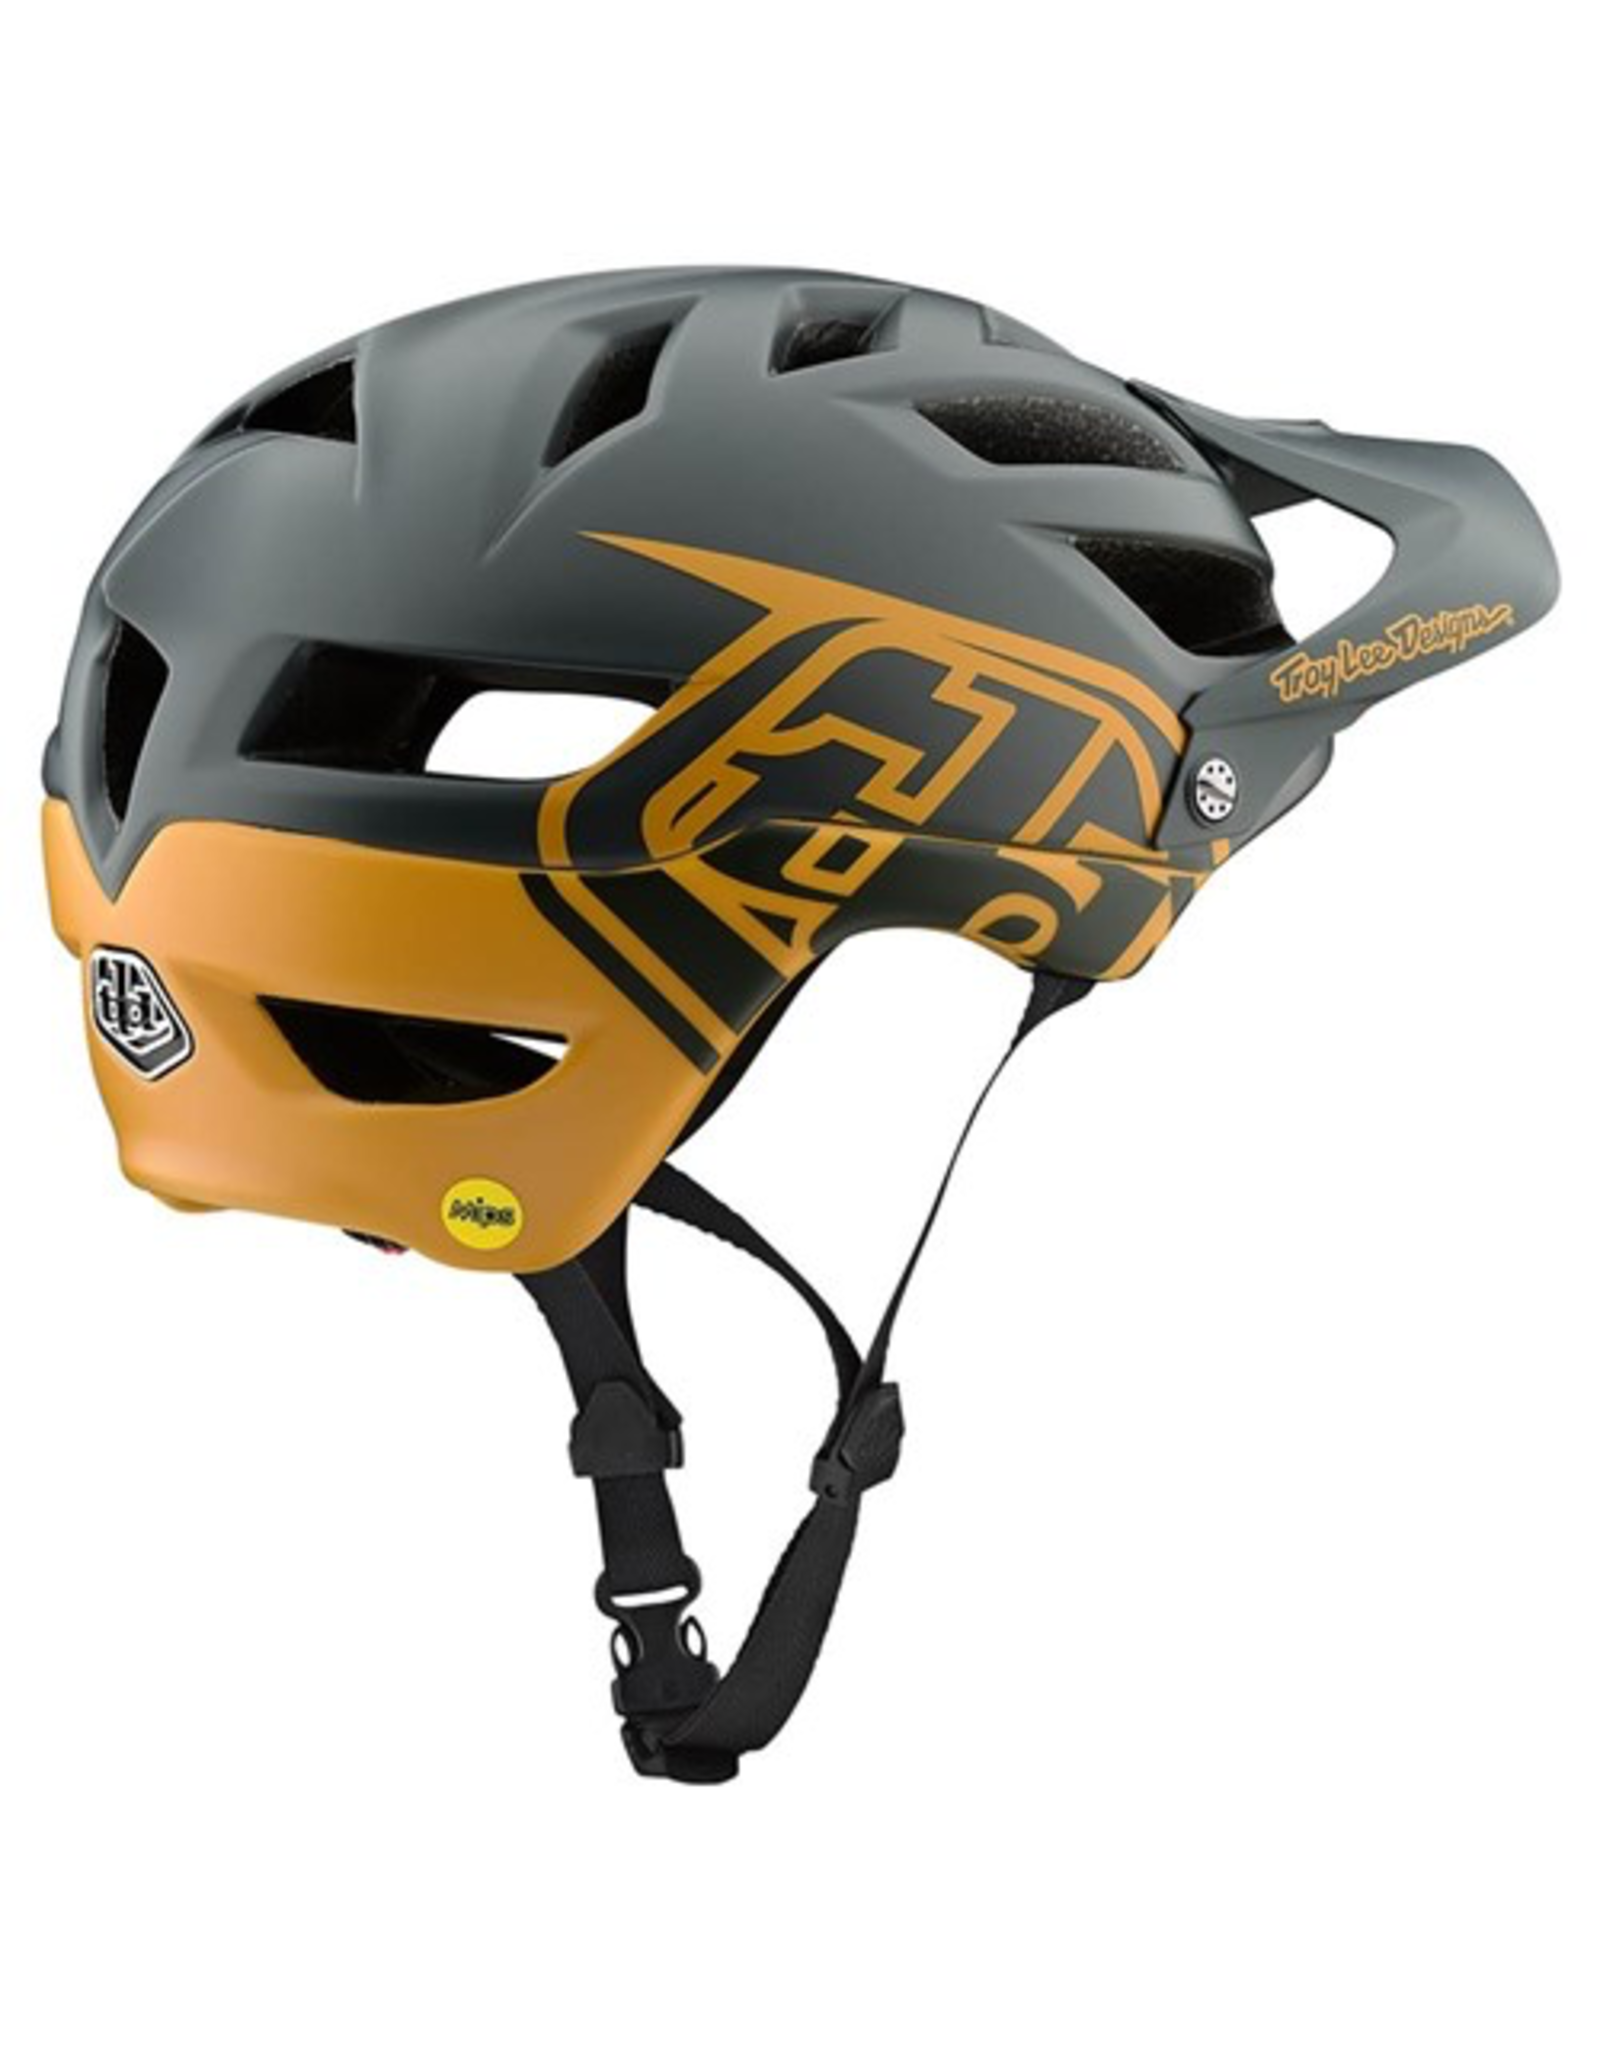 TROY LEE DESIGNS HELMET TLD '20 A1 AS CLASSIC MIPS GREY BOURBON